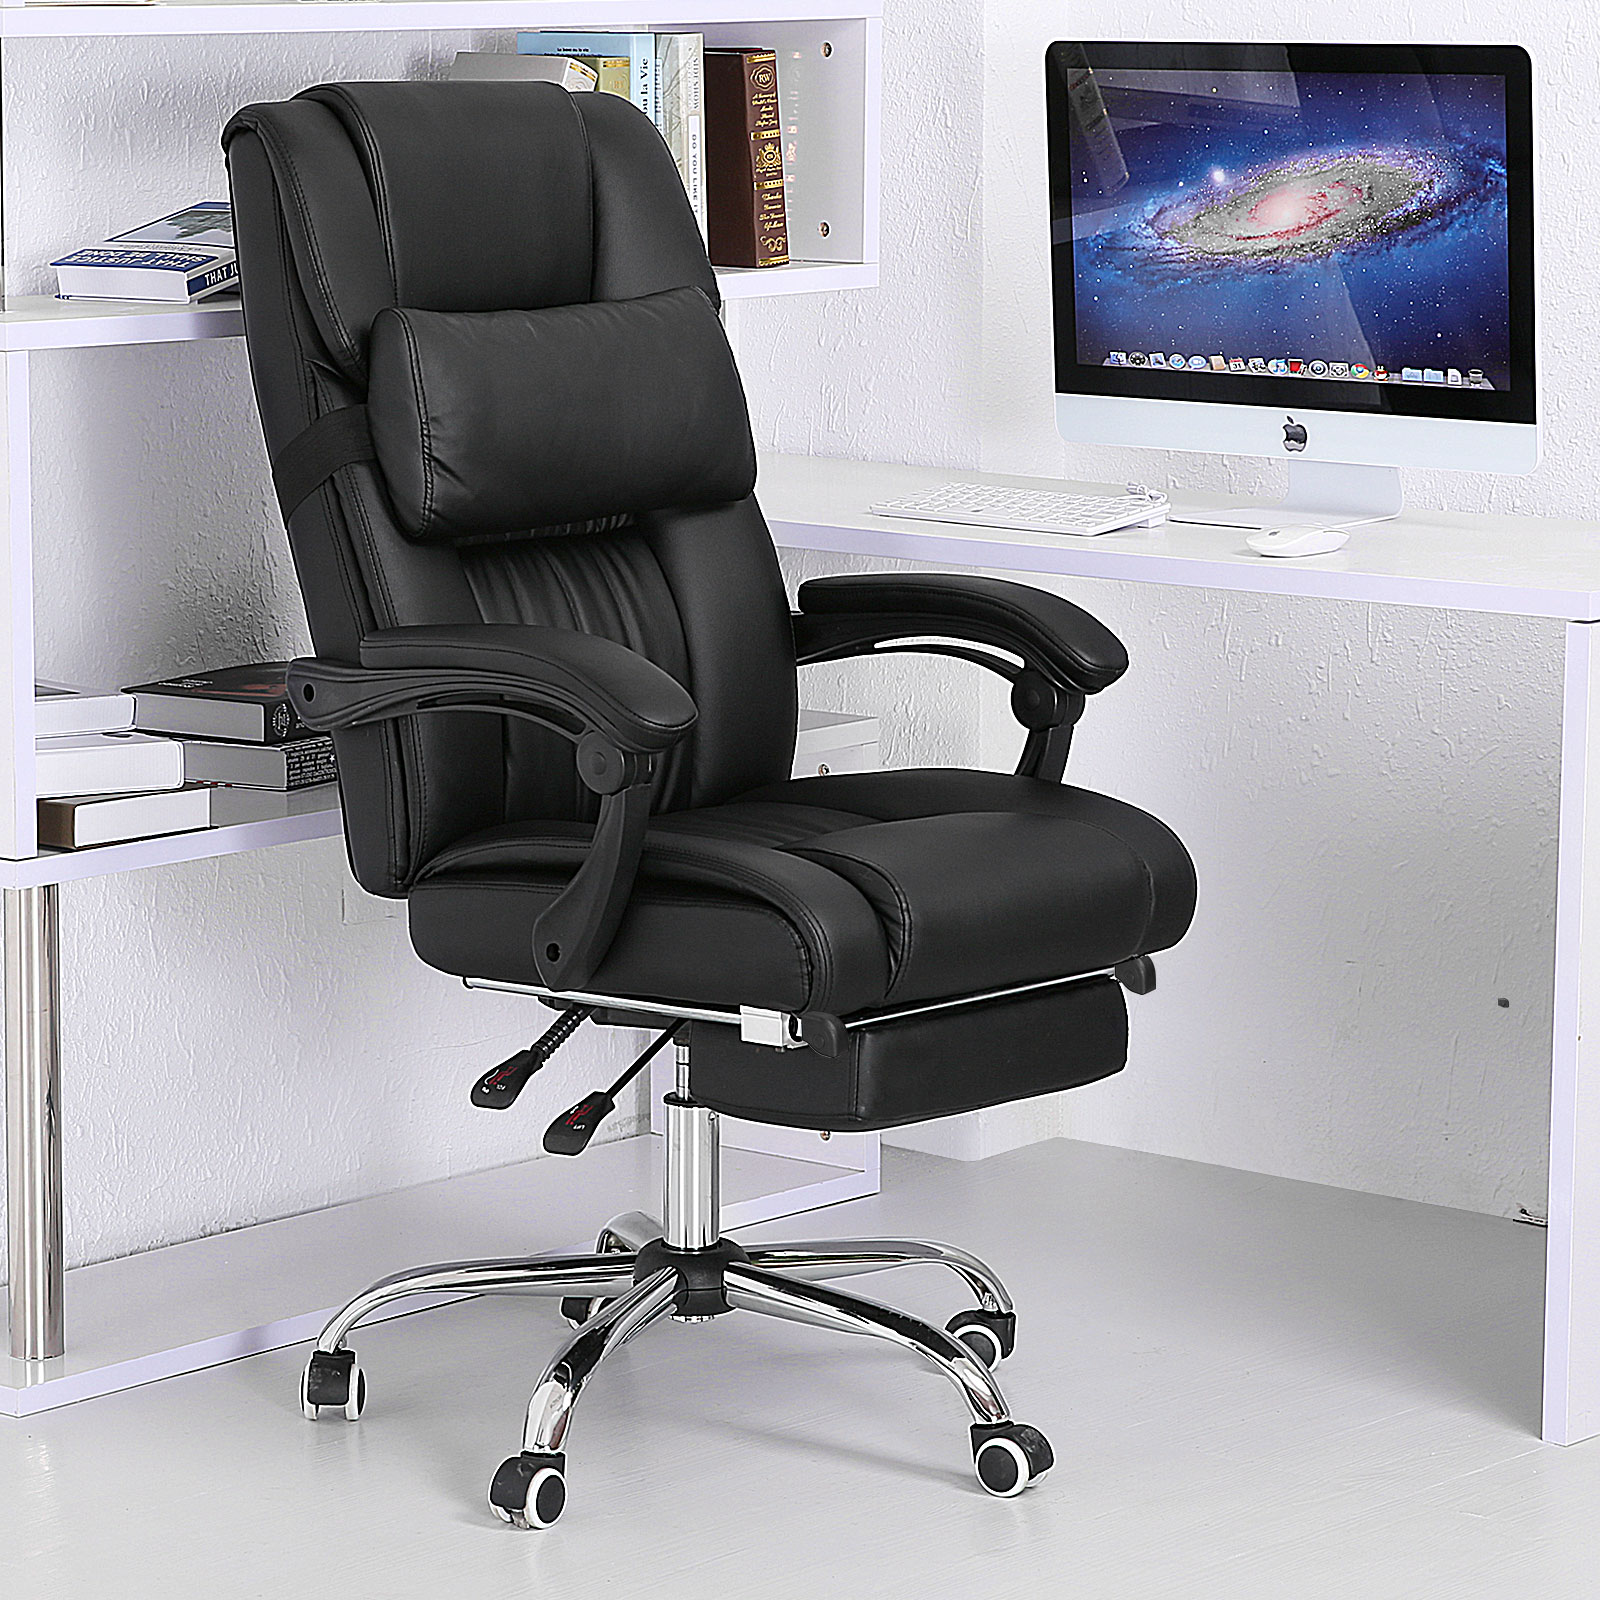 recliner office chair nz backjack anywhere executive ergonomic high back reclining